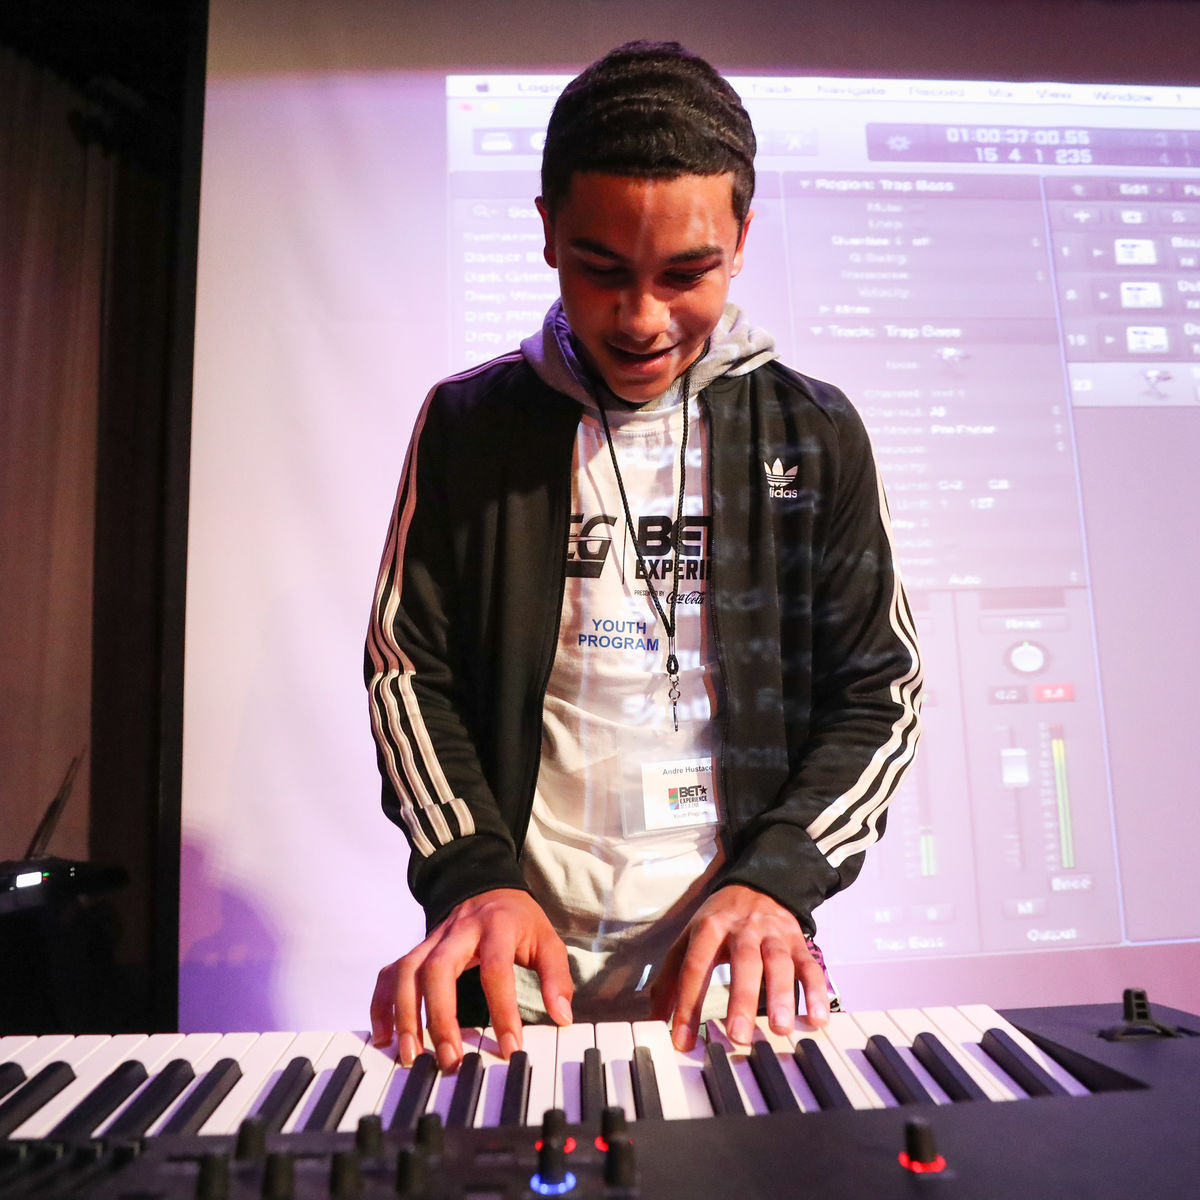 A student wearing an AEG and BET shirt plays the keyboard during a music production class.